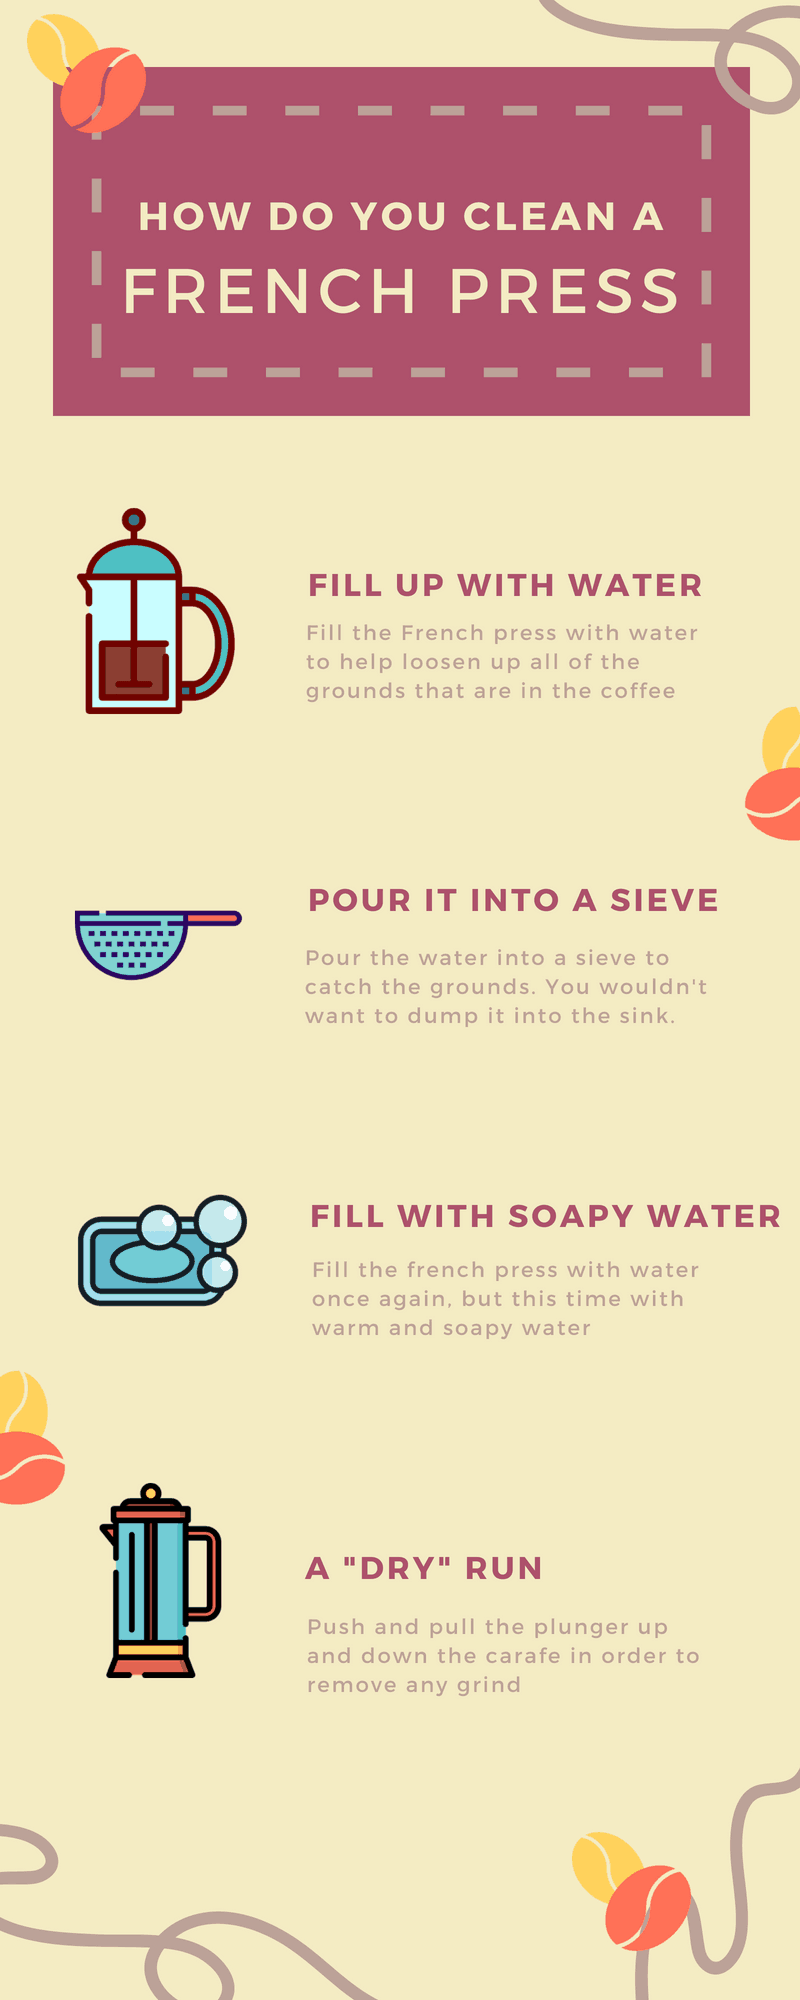 How Do You Clean A French Press infographic